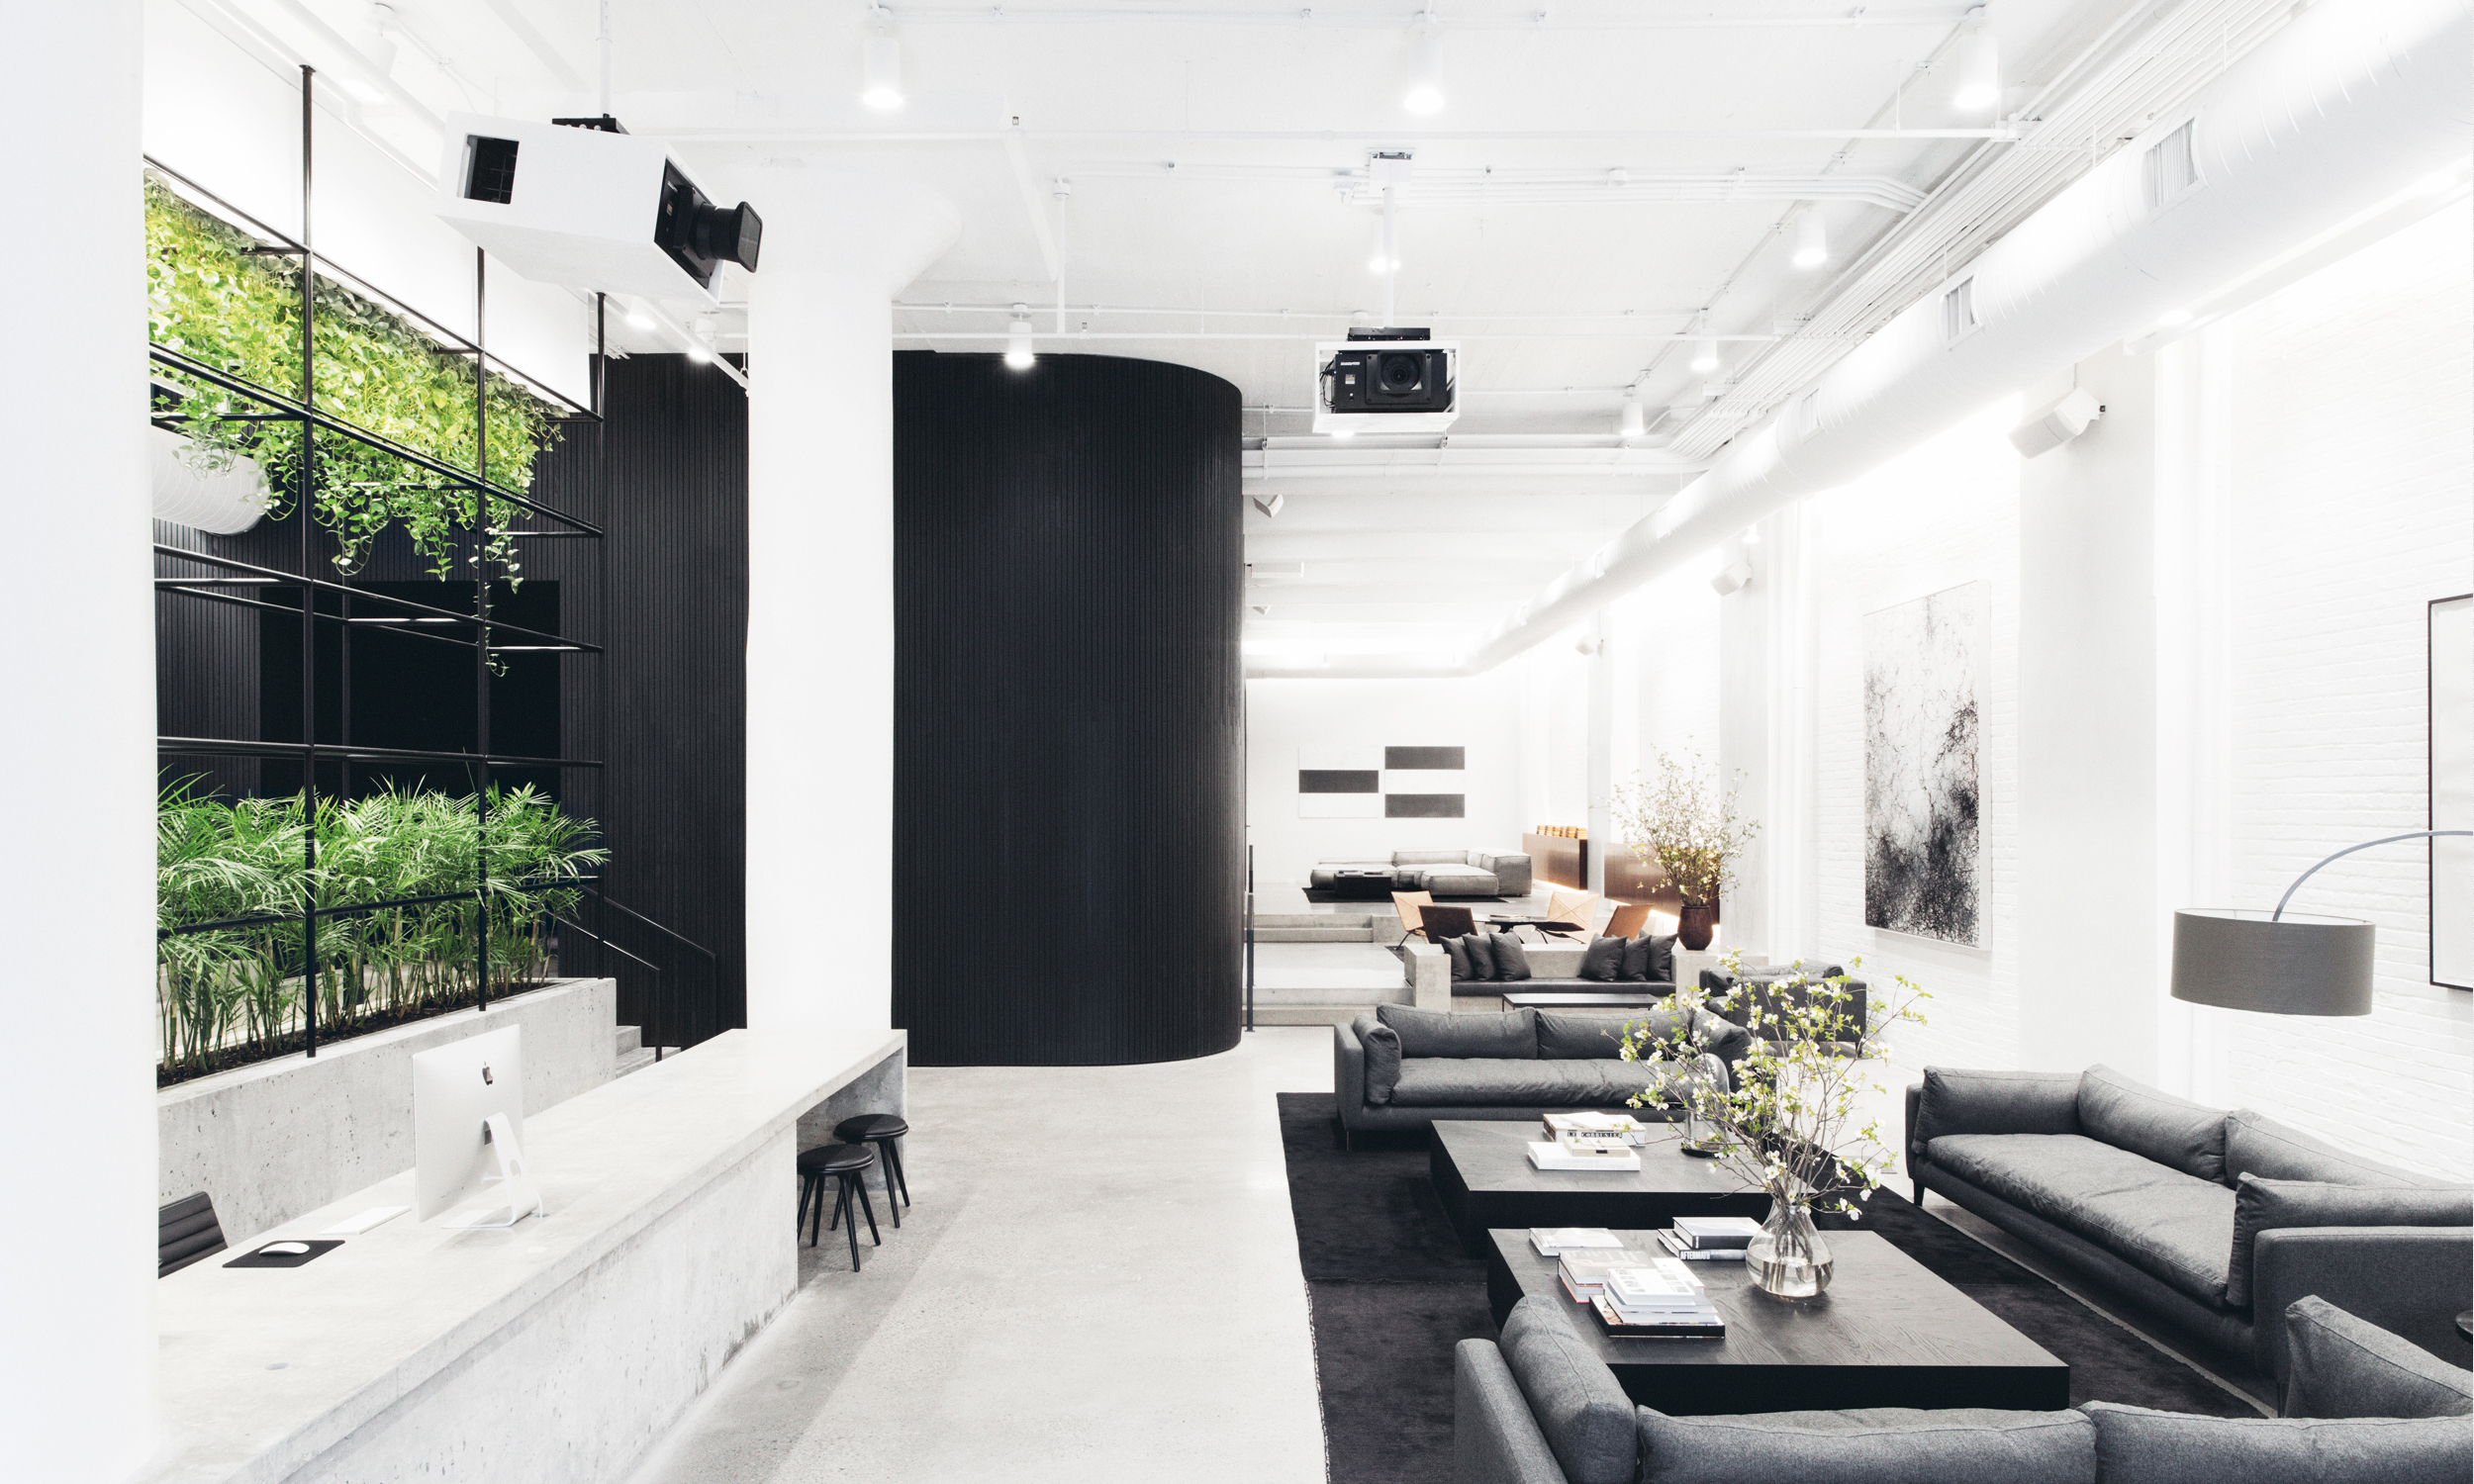 about-Squarespace-NYC-HQ_2-2500x1500.jpg